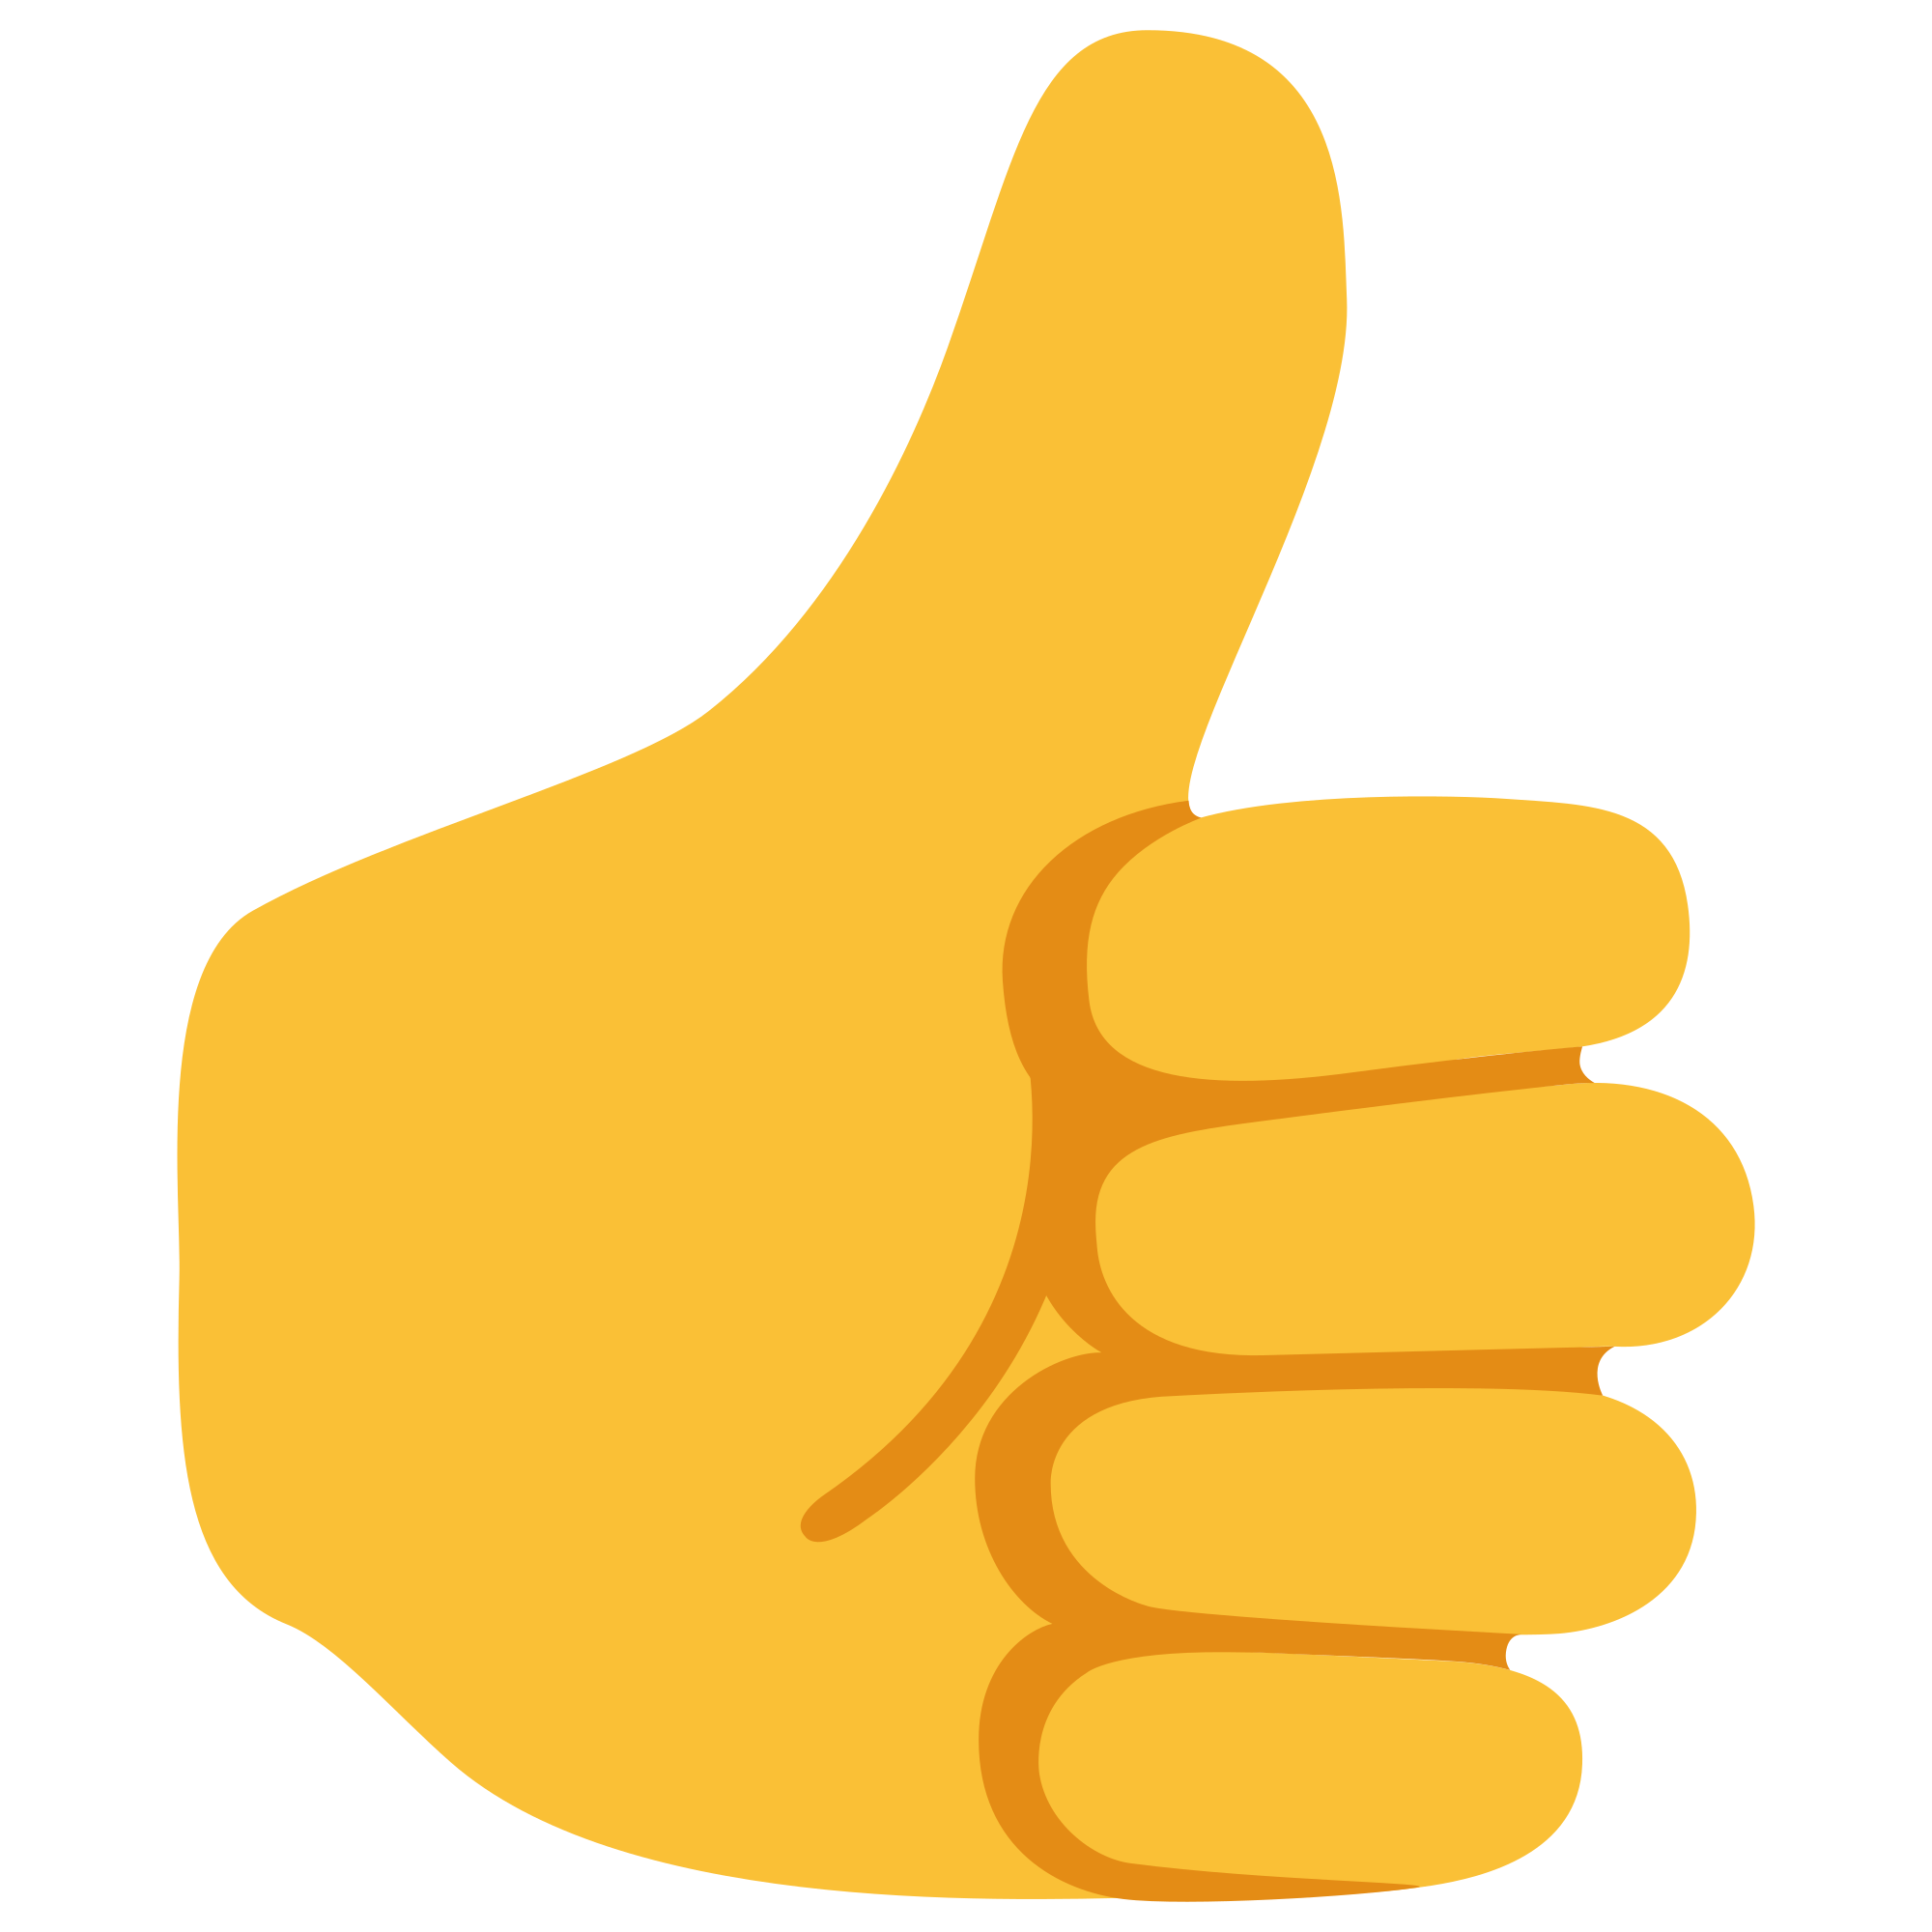 Emoji clipart thumbs up. Png transparent images pngio